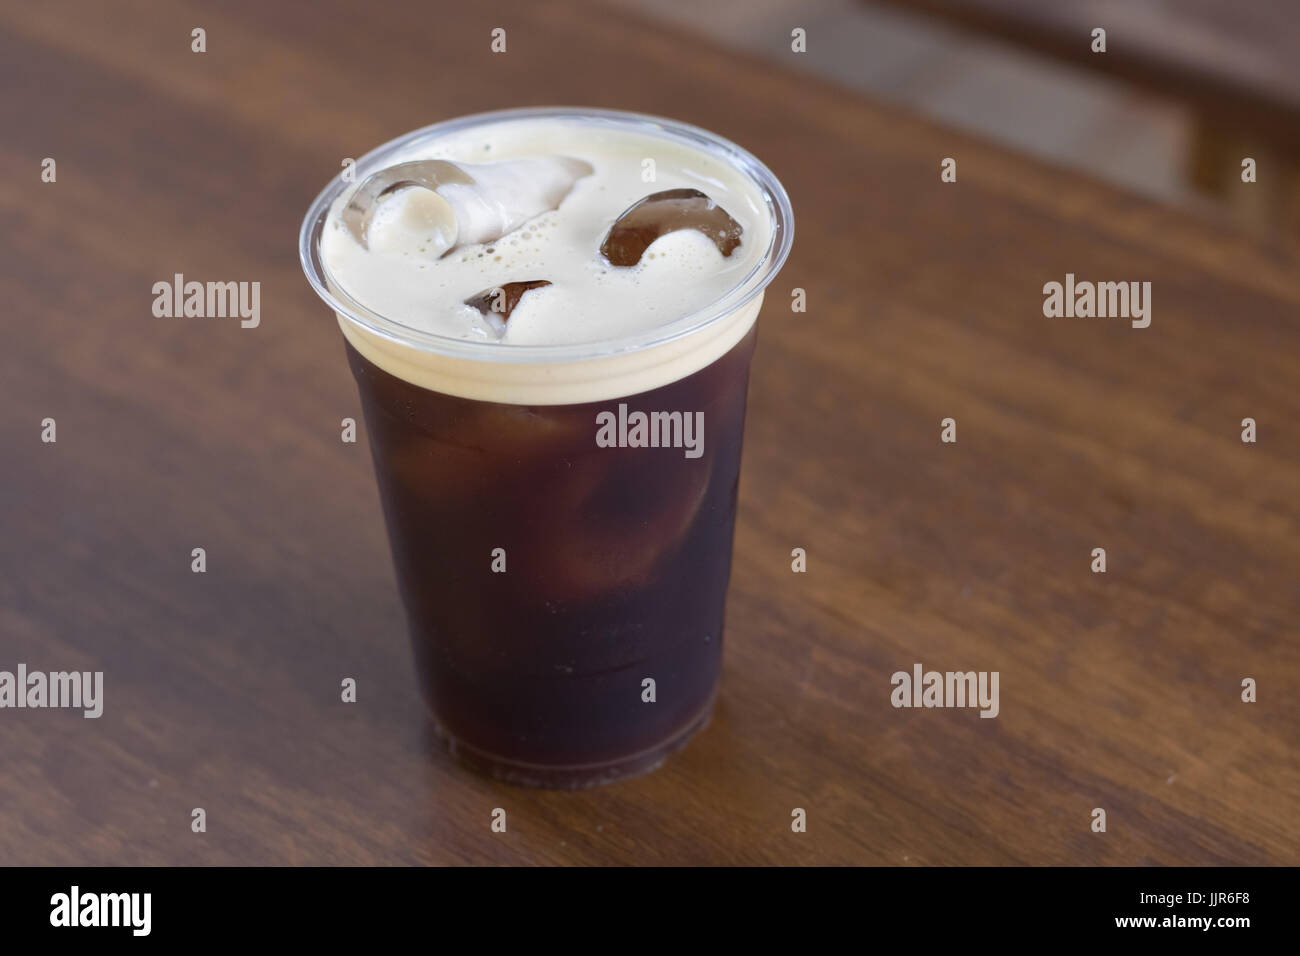 Sparkling Nitro cold brew coffee in take away cup ready to drink - Stock Image